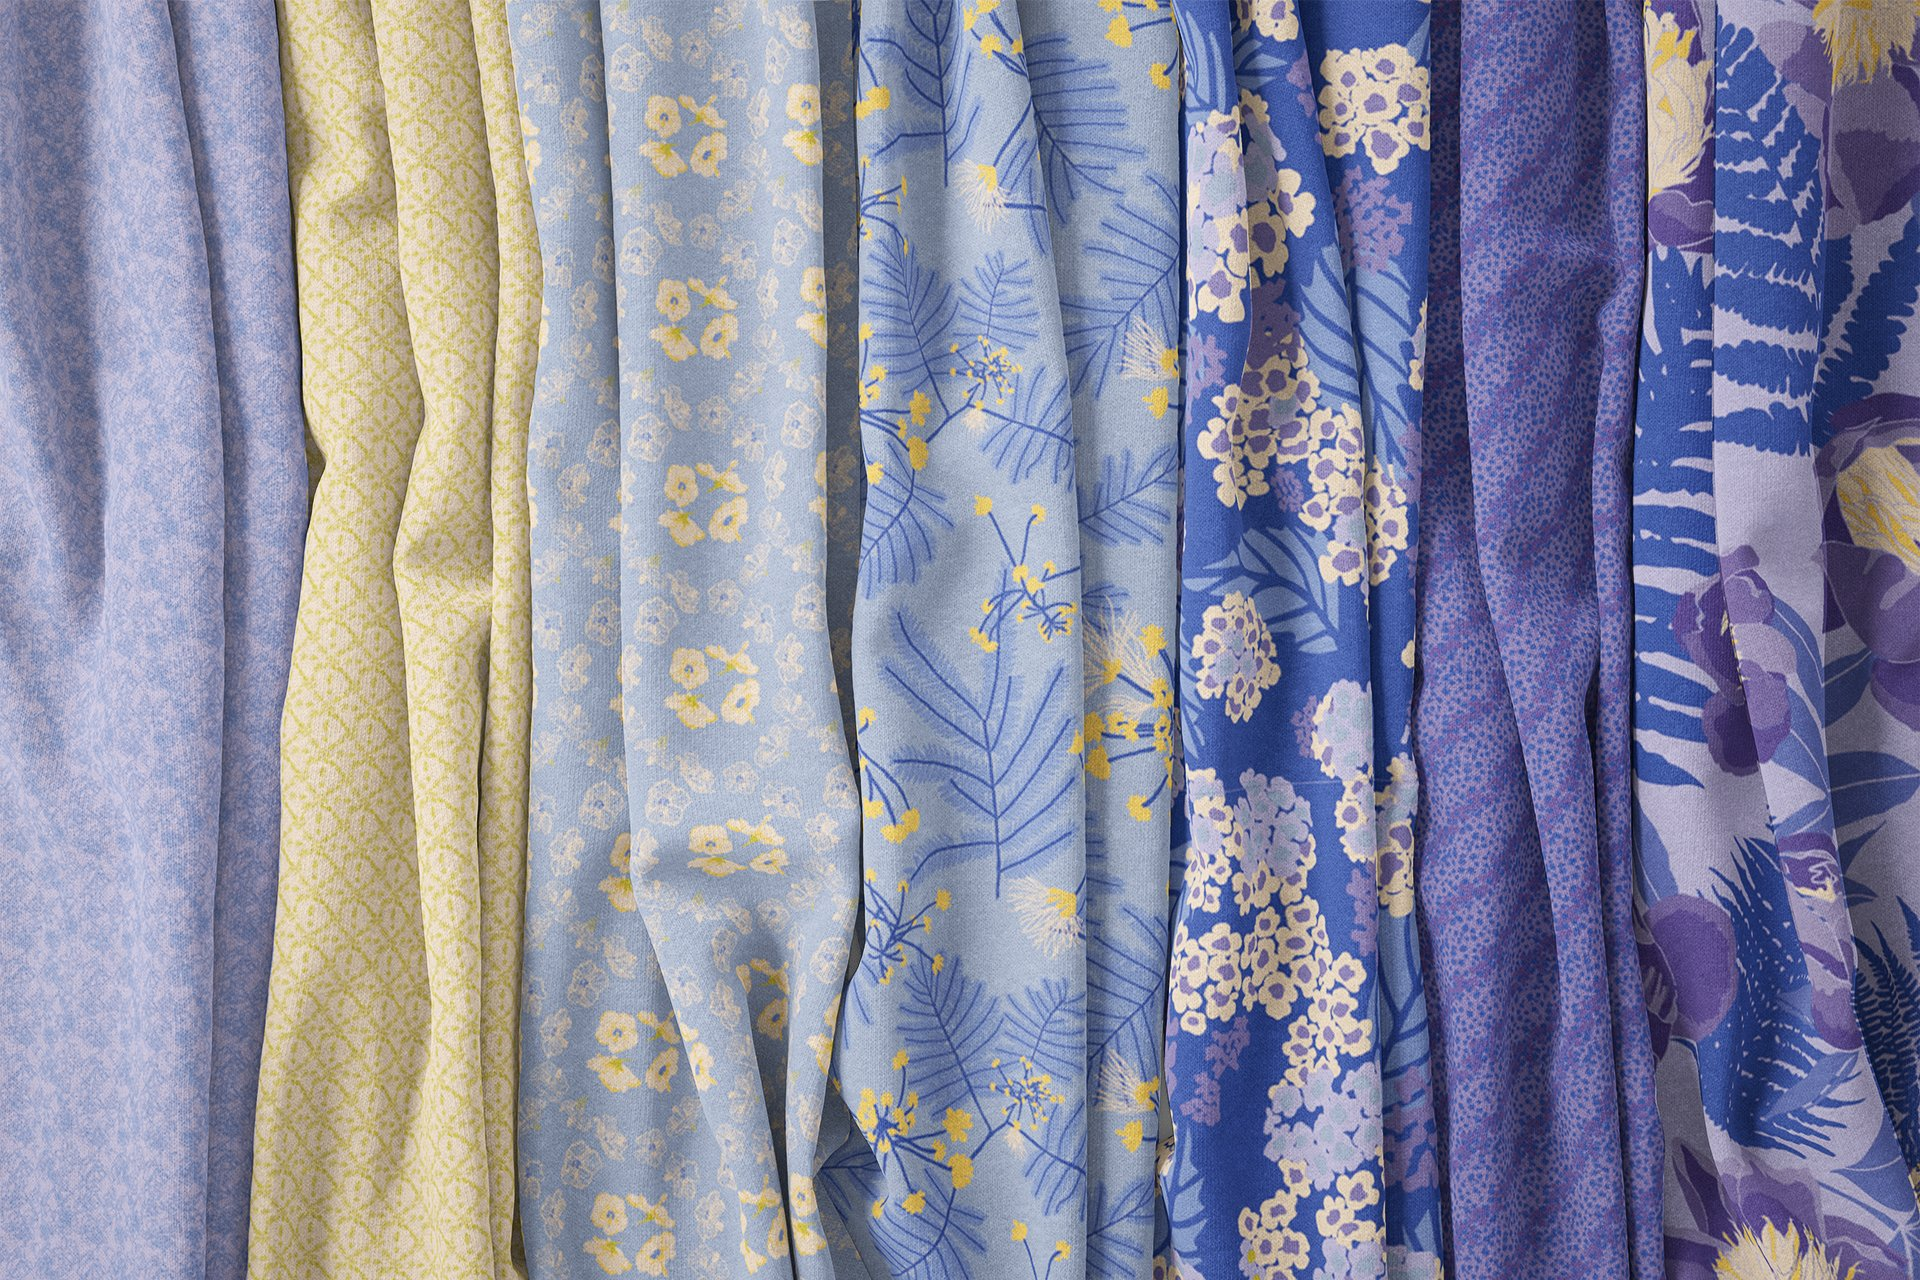 Cape Cod Garden Fabric Collection Dusk Colorway⎥Christine Martell